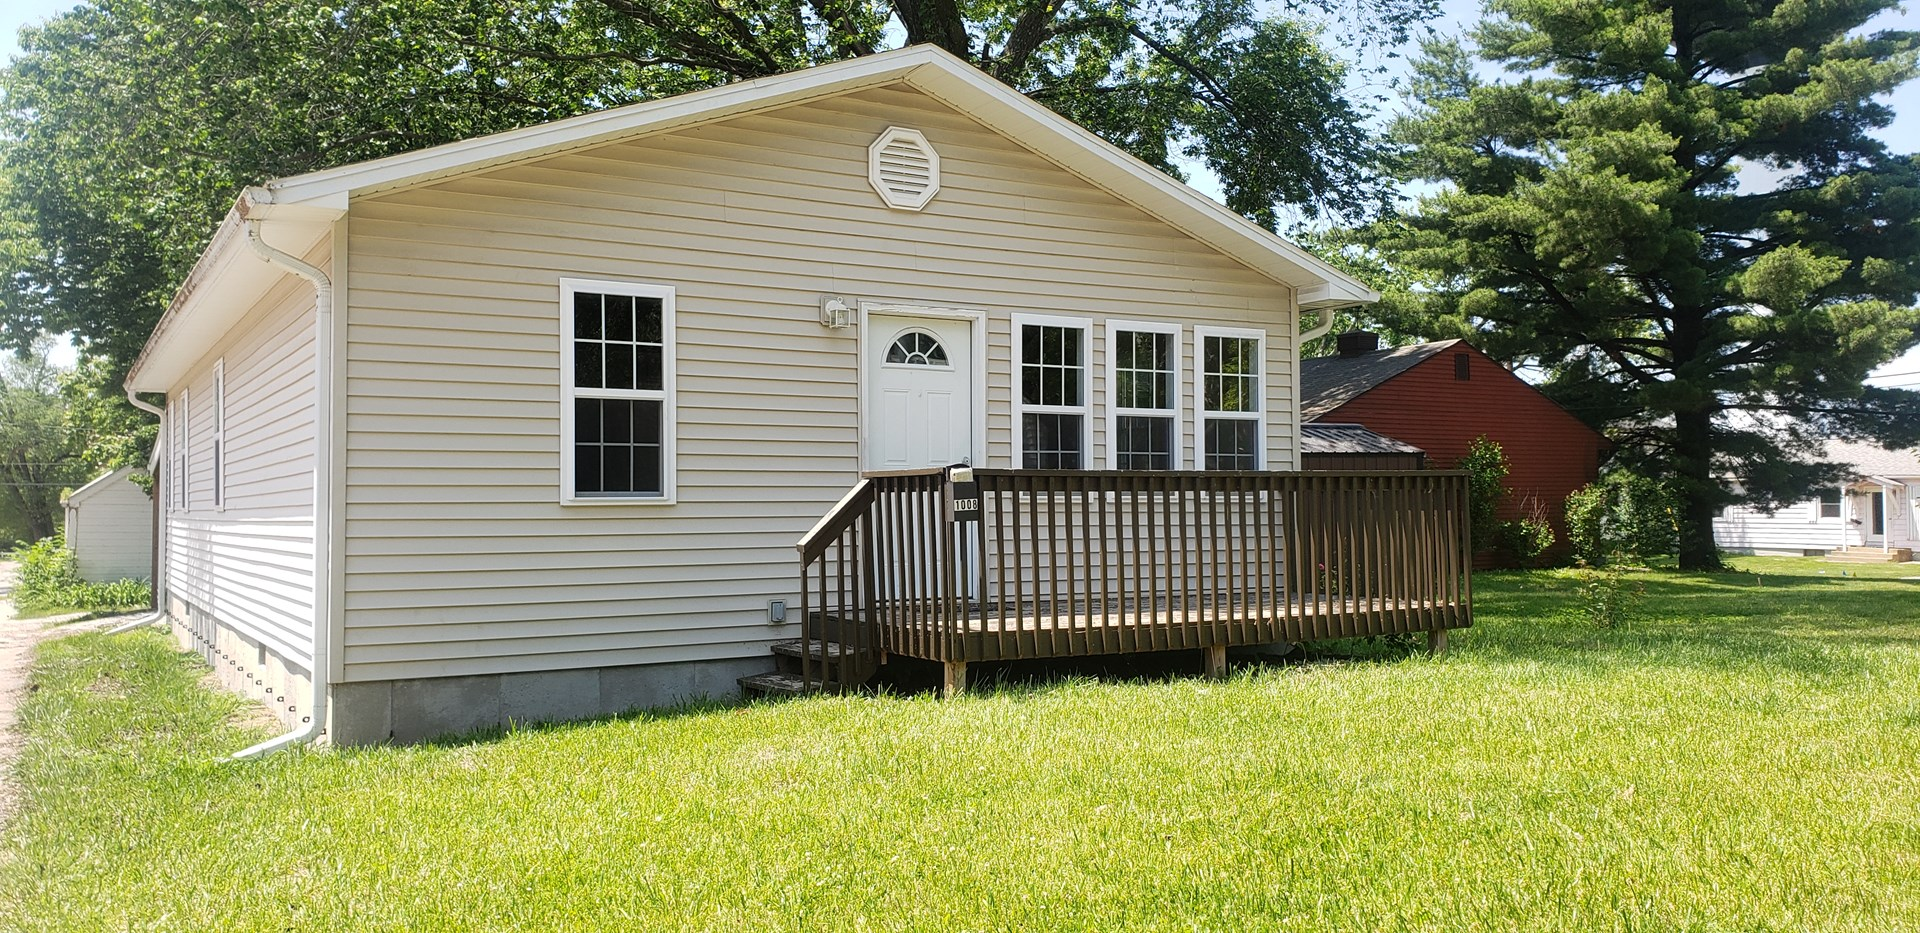 Newer Home Built in 2015, Chillicothe, MO